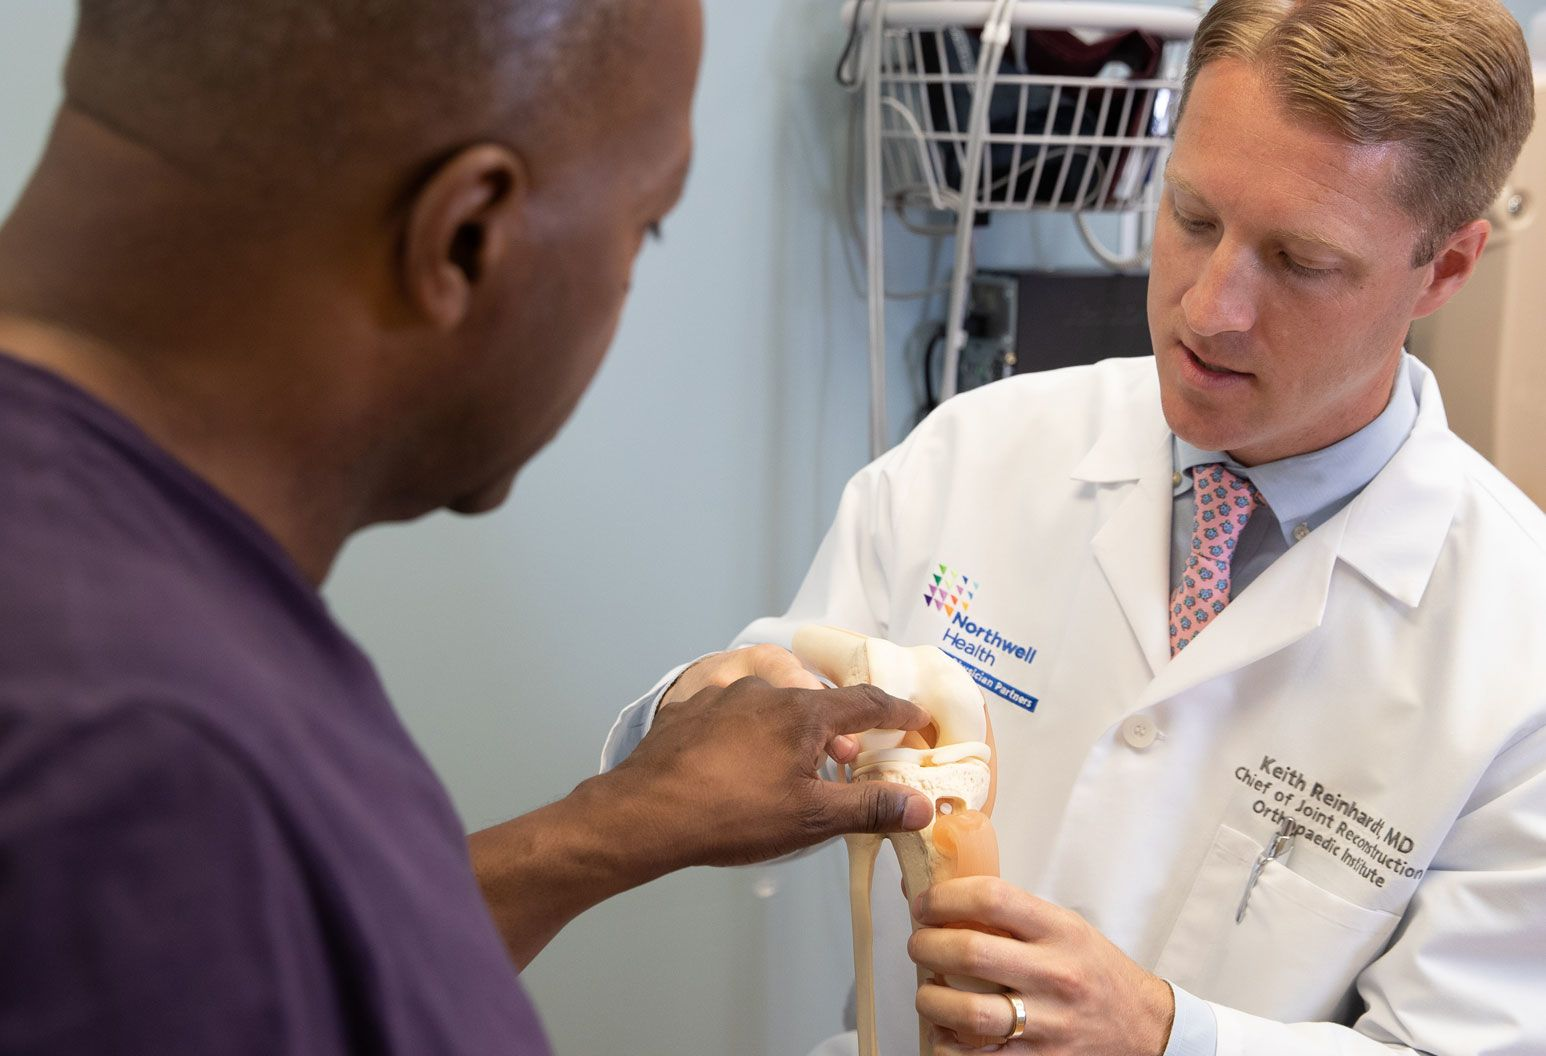 A doctor shows a patient a model of a joint, explaining a procedure.